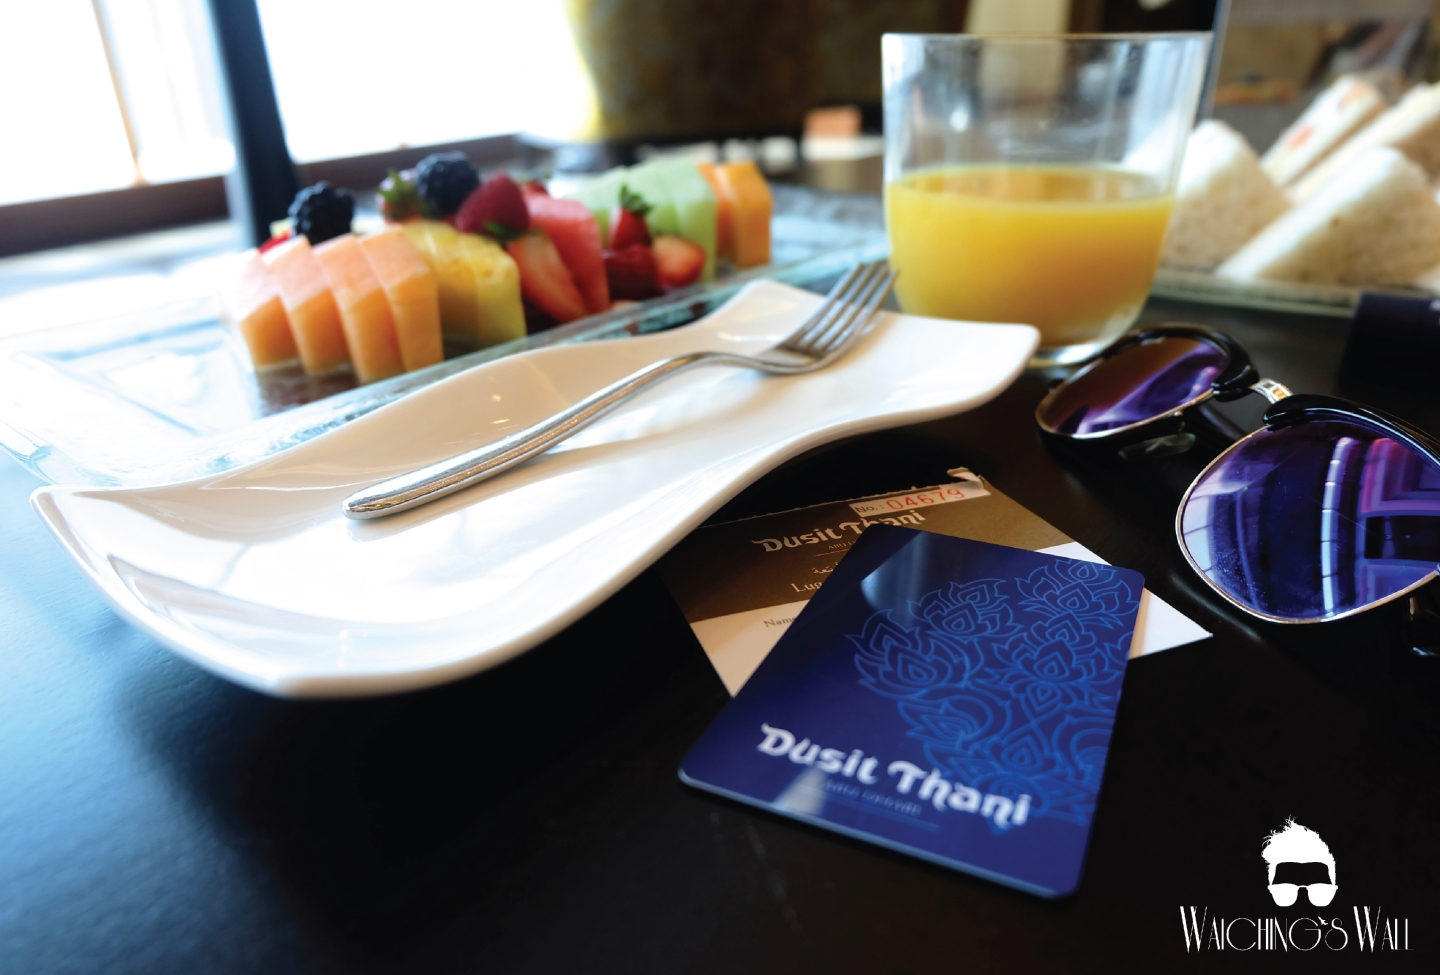 Dusit Thani_Hotel and Welcome_Waiching's Wall-02